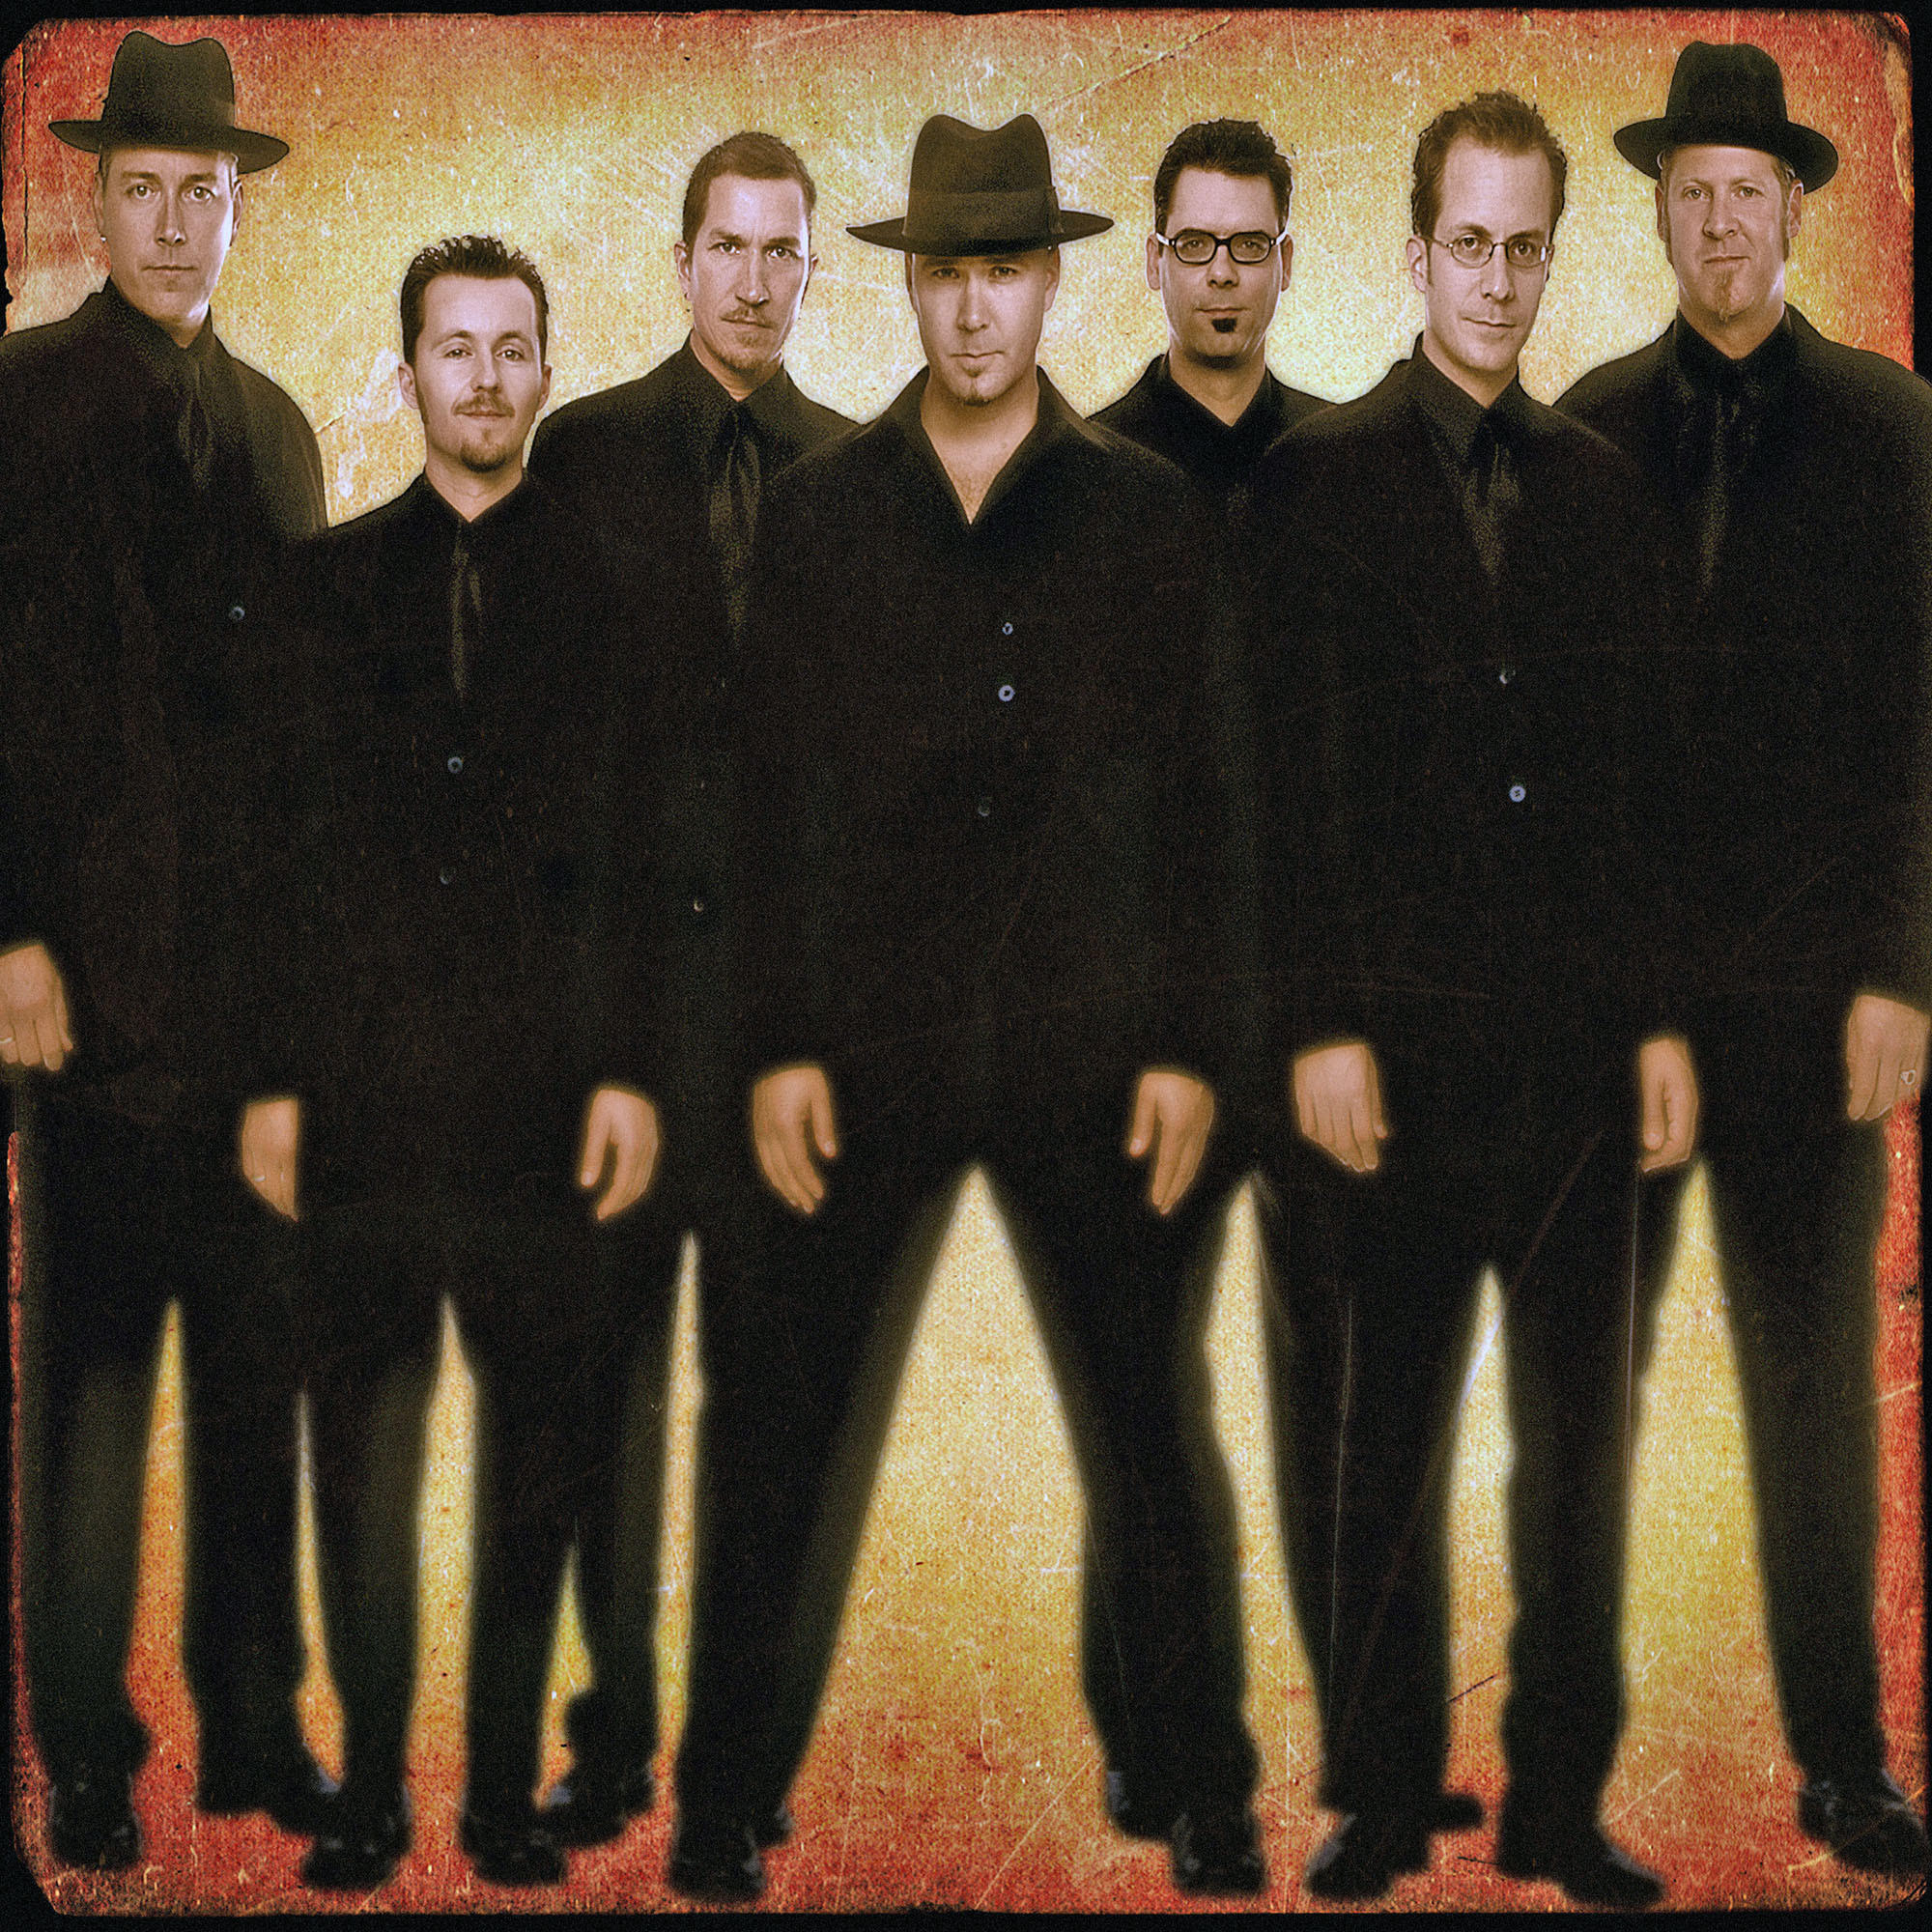 Big Bad Voodoo Daddy will perform Feb. 22, 2014 at the Alex Theatre to benefit music and arts programs at Glendale Unified schools. Two members of the band who live in Glendale have children at Glendale schools.